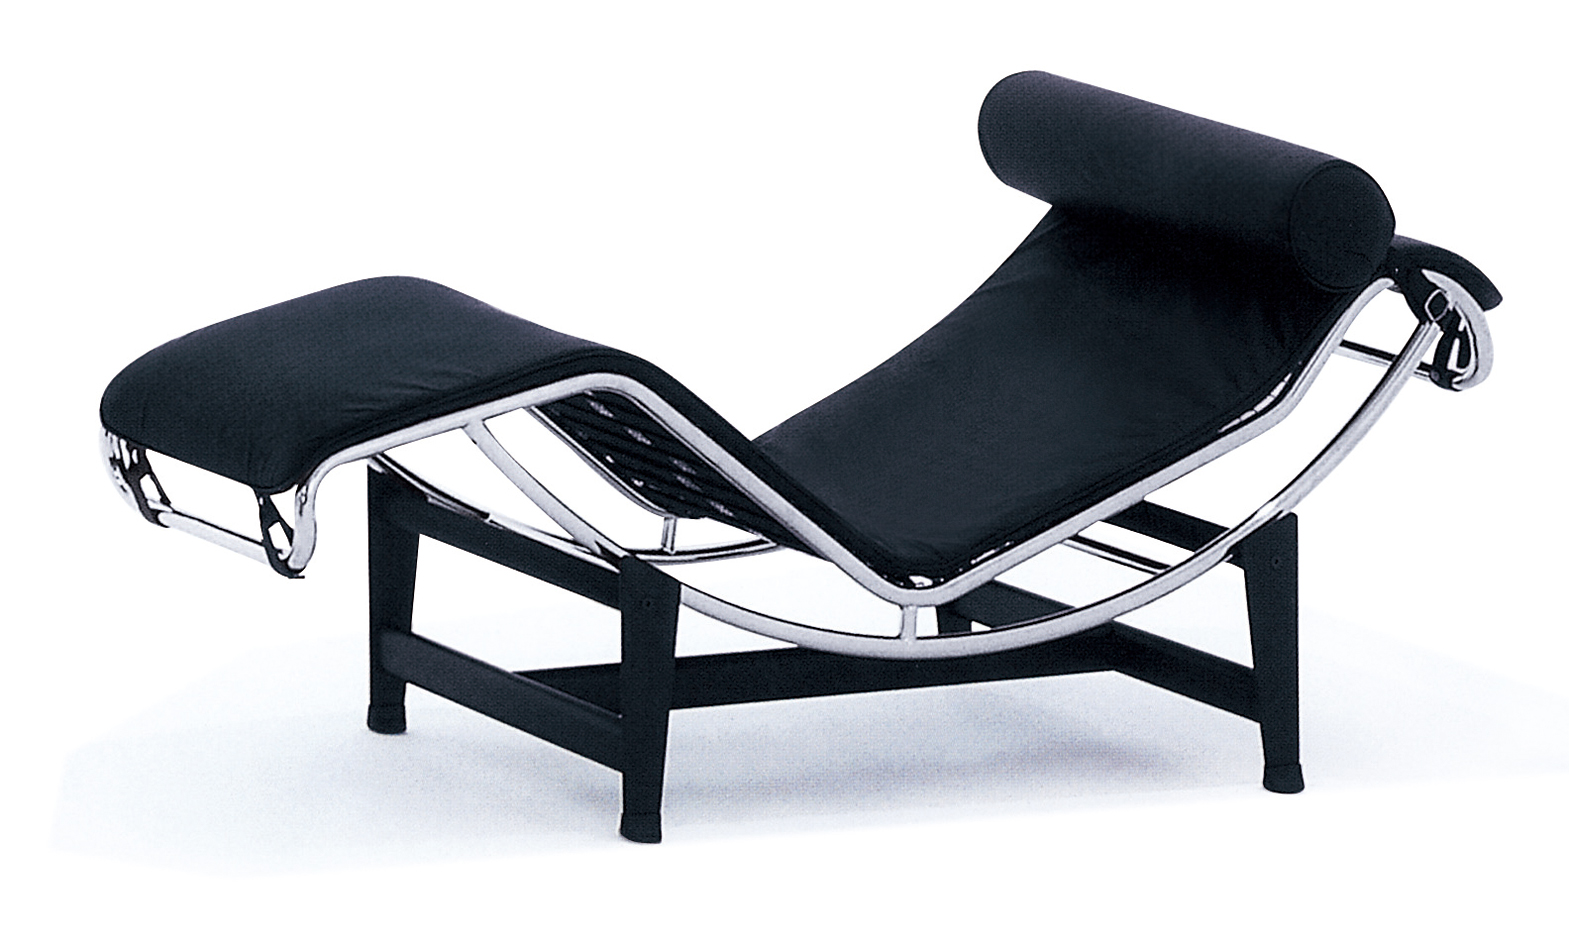 SHIMING FURNITURE MS-3102 Black chaise lounge chair